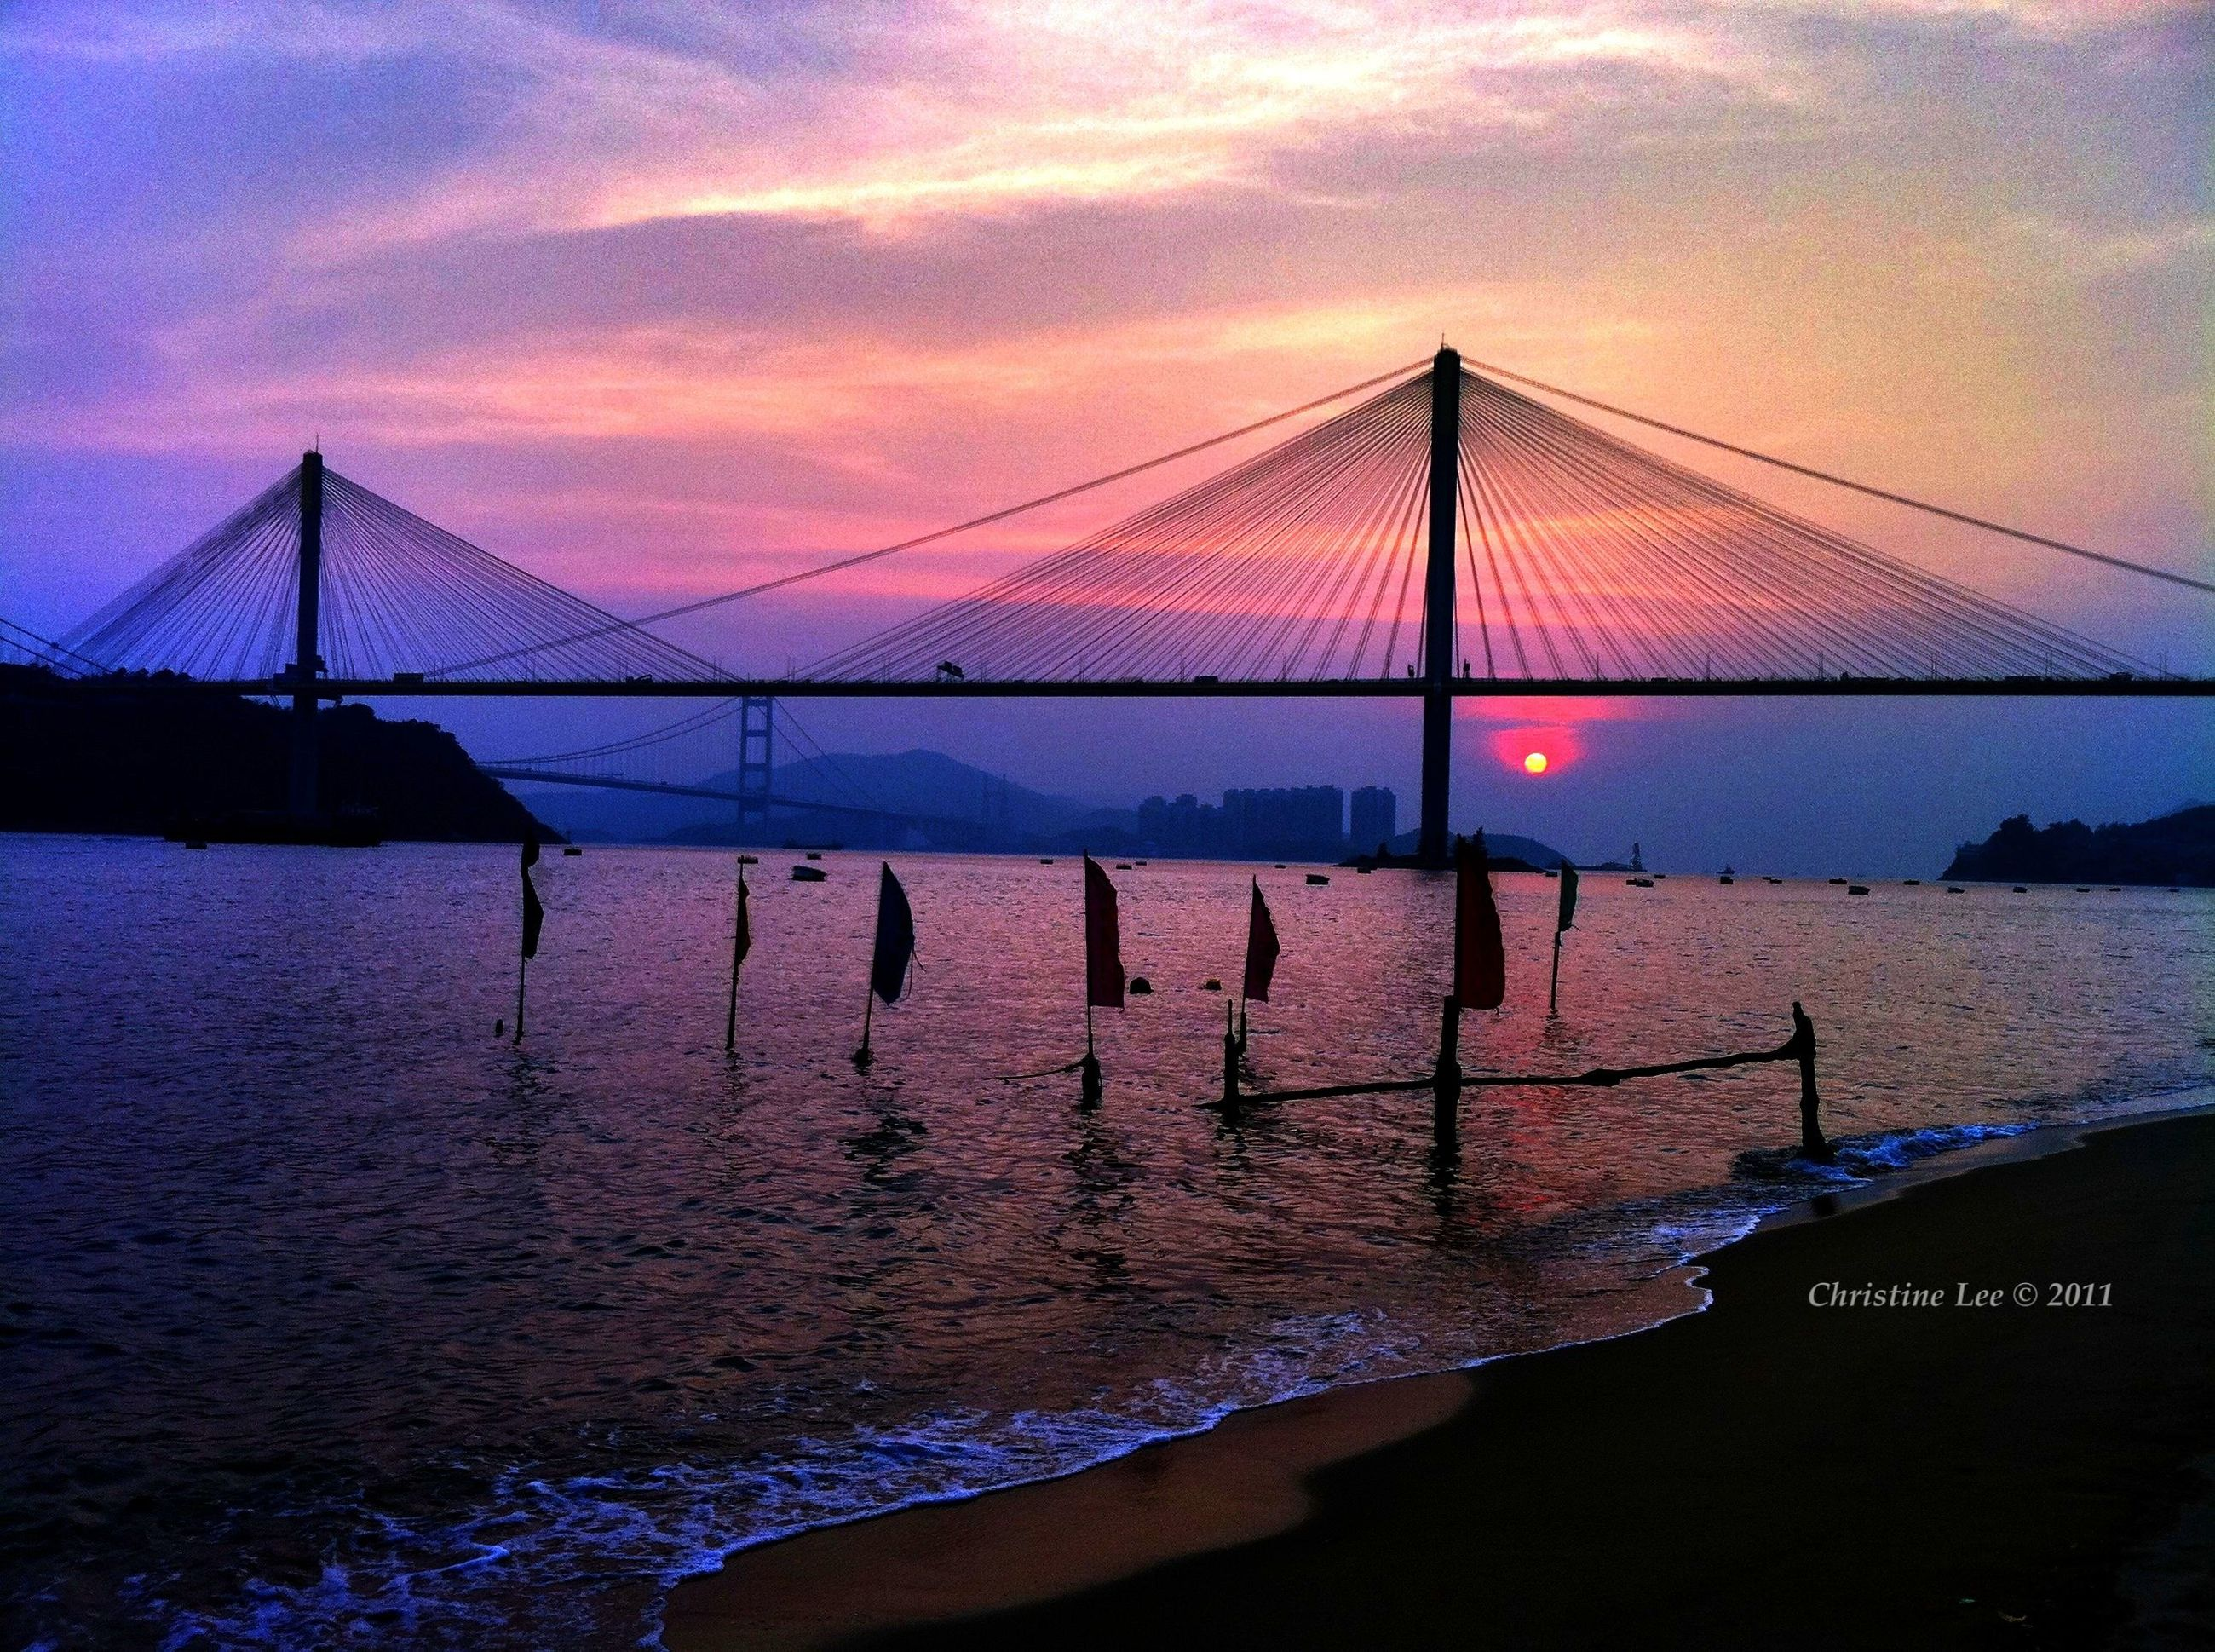 sunset, water, connection, sky, bridge - man made structure, sea, suspension bridge, tranquil scene, tranquility, scenics, built structure, engineering, beauty in nature, silhouette, reflection, bridge, cloud - sky, nature, architecture, orange color